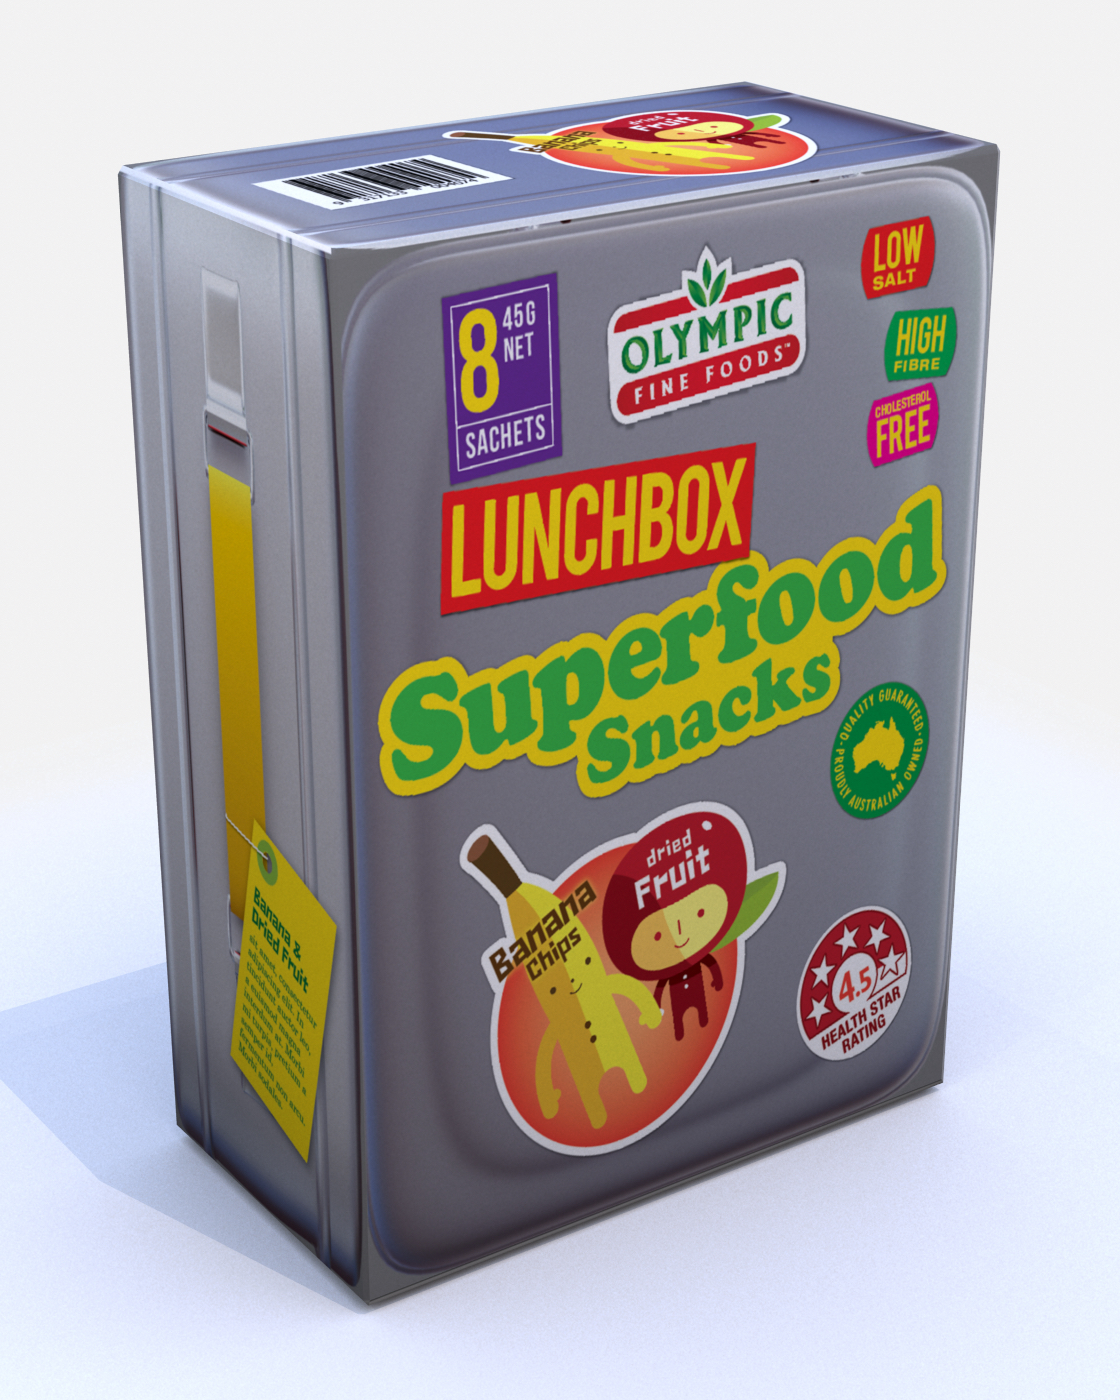 Lunchbox Superfoods – Banana Chips & Fruit Bits